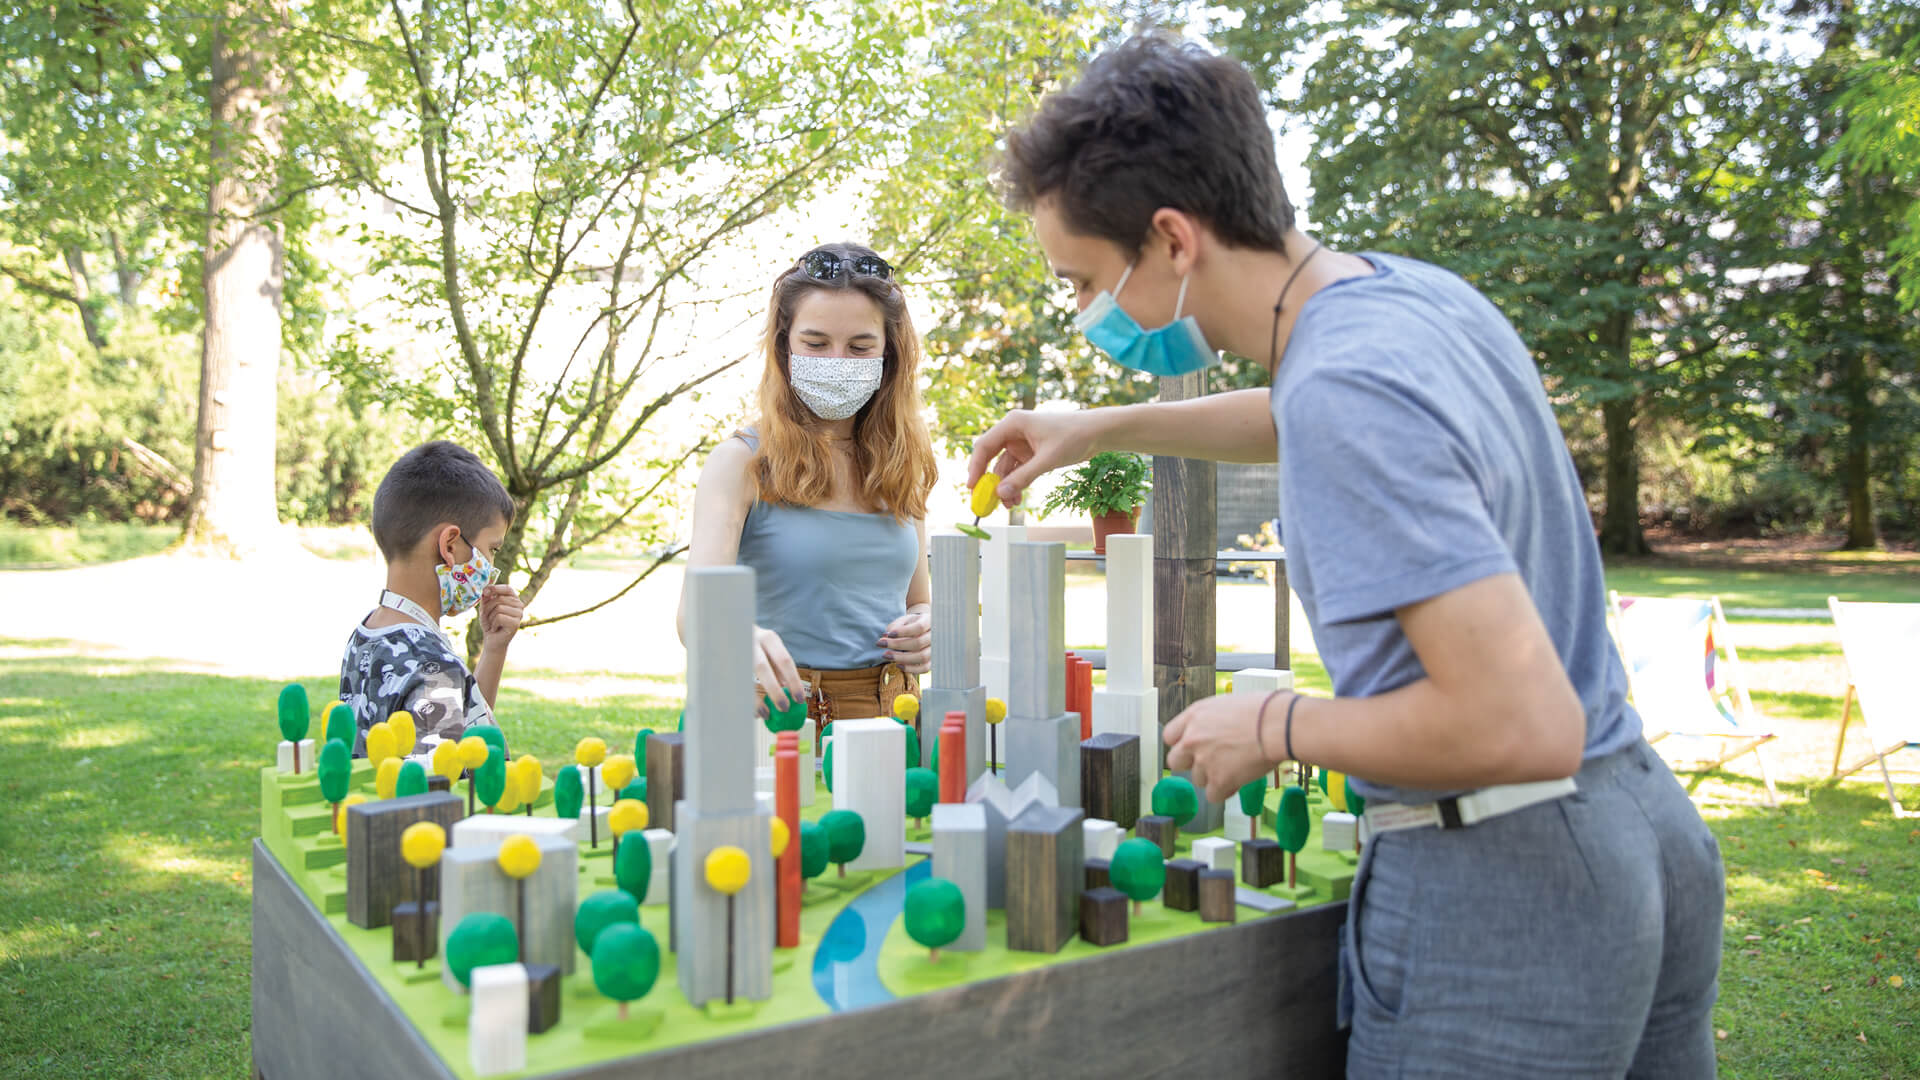 Create Your World, a project on the grass of JKU Campus that challenges visitors to propose an eco-conscious city model, and then evaluates its viability vis-à-vis a computer-made model | In Kepler's Gardens | Ars Electronica | STIRworld